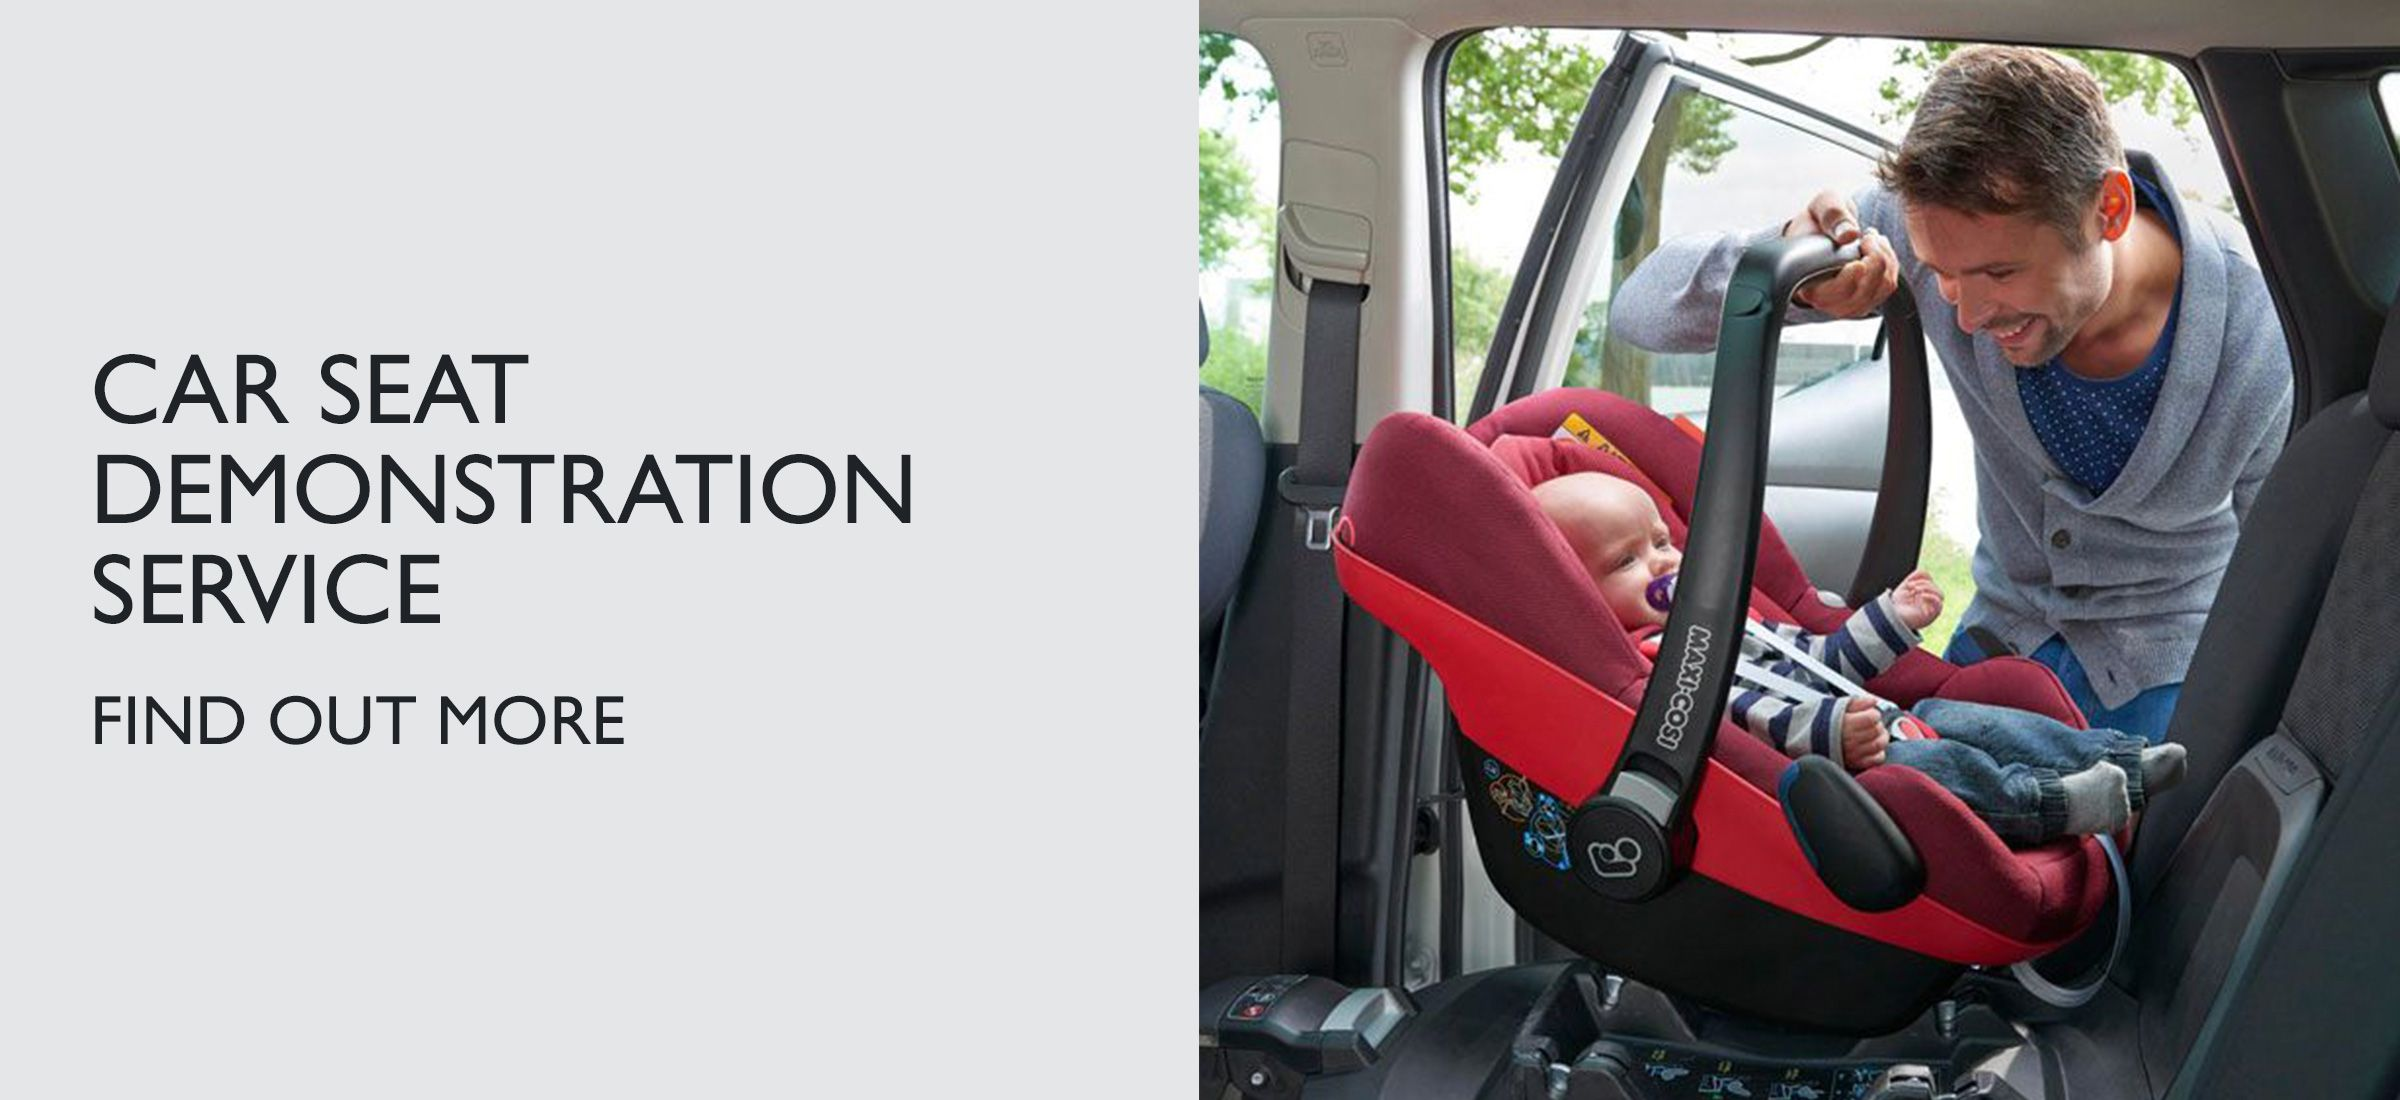 Car Seat Demostration Service